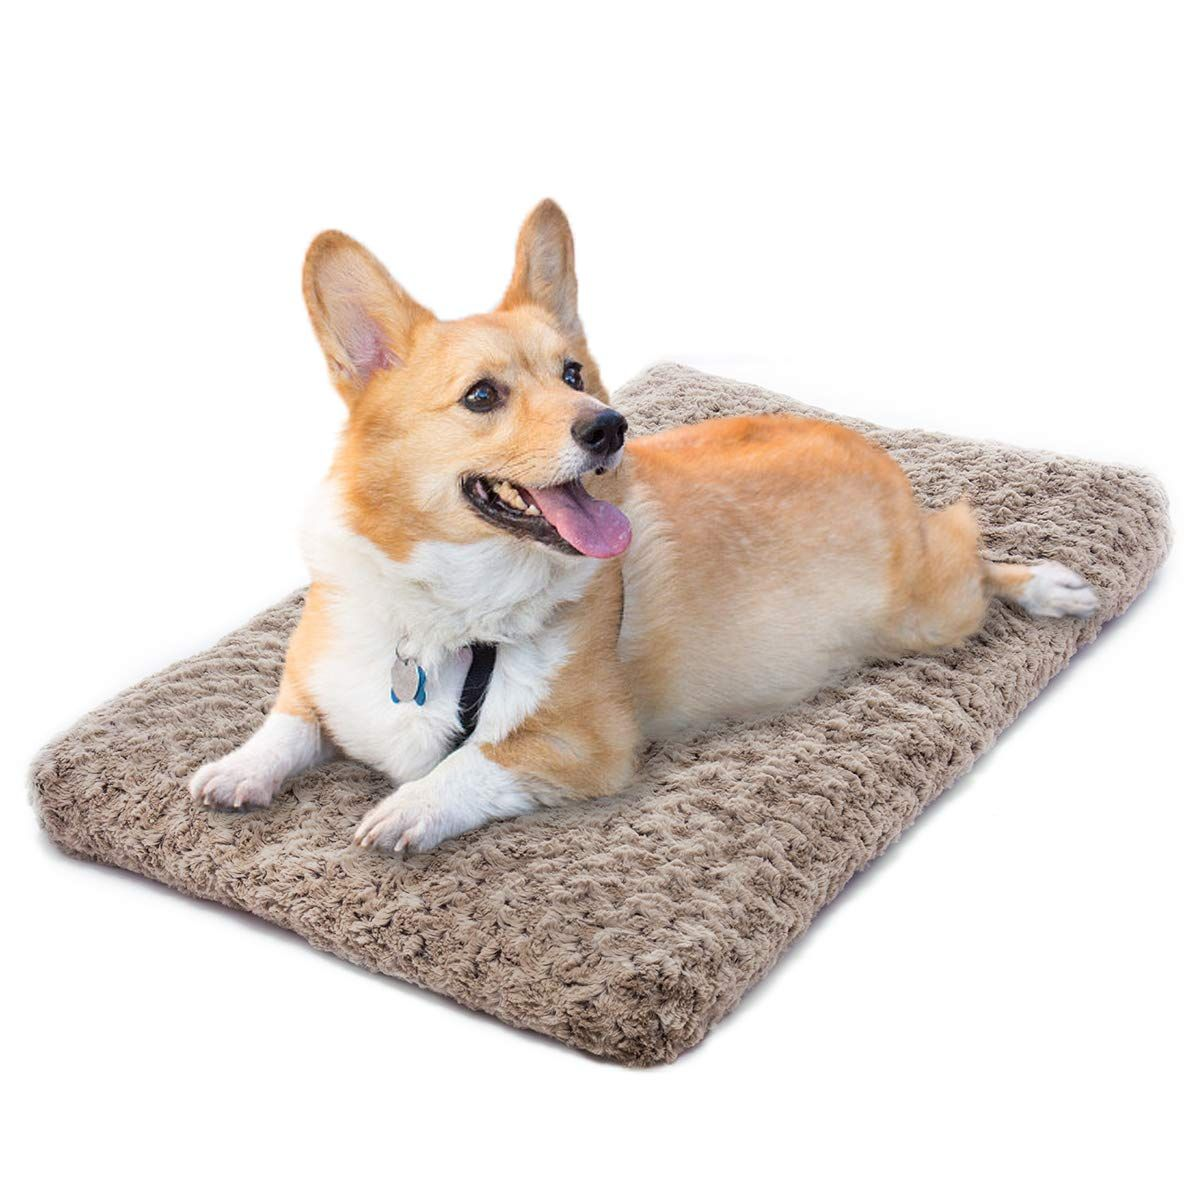 Joejoy Dog Bed Ultra Soft Crate Pad Home Washable Mat For Dogs And Cats Crate Be Sure To Check Out This Awesome Product Thi Cat Crate Dog Pet Beds Dog Cat